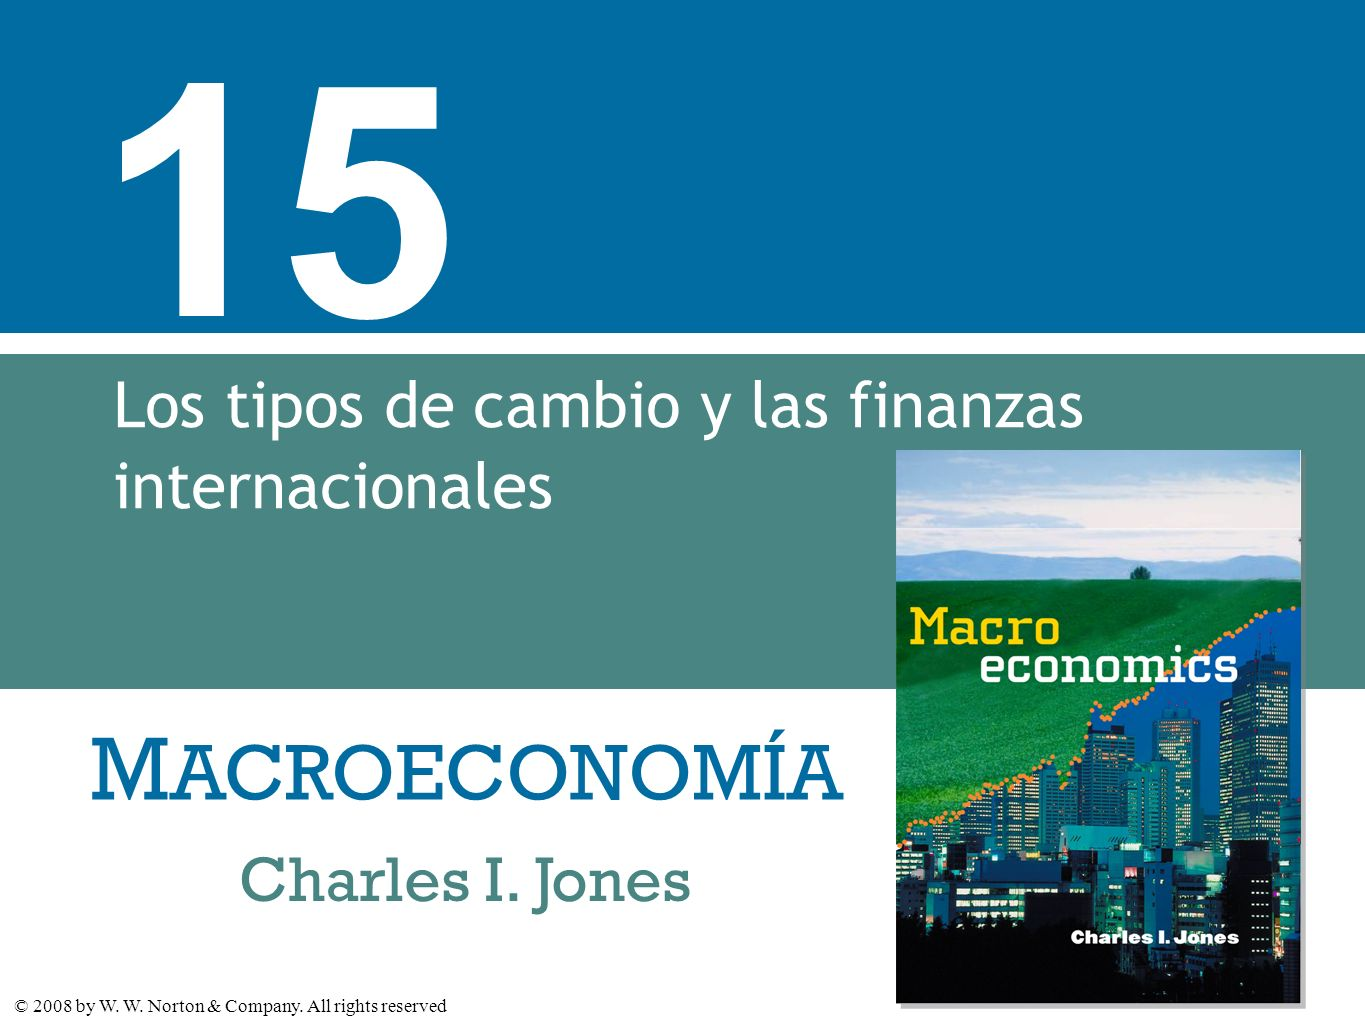 M ACROECONOMÍA © 2008 by W. W. Norton & Company. All rights reserved Charles I. Jones 15 Los tipos de cambio y las finanzas internacionales